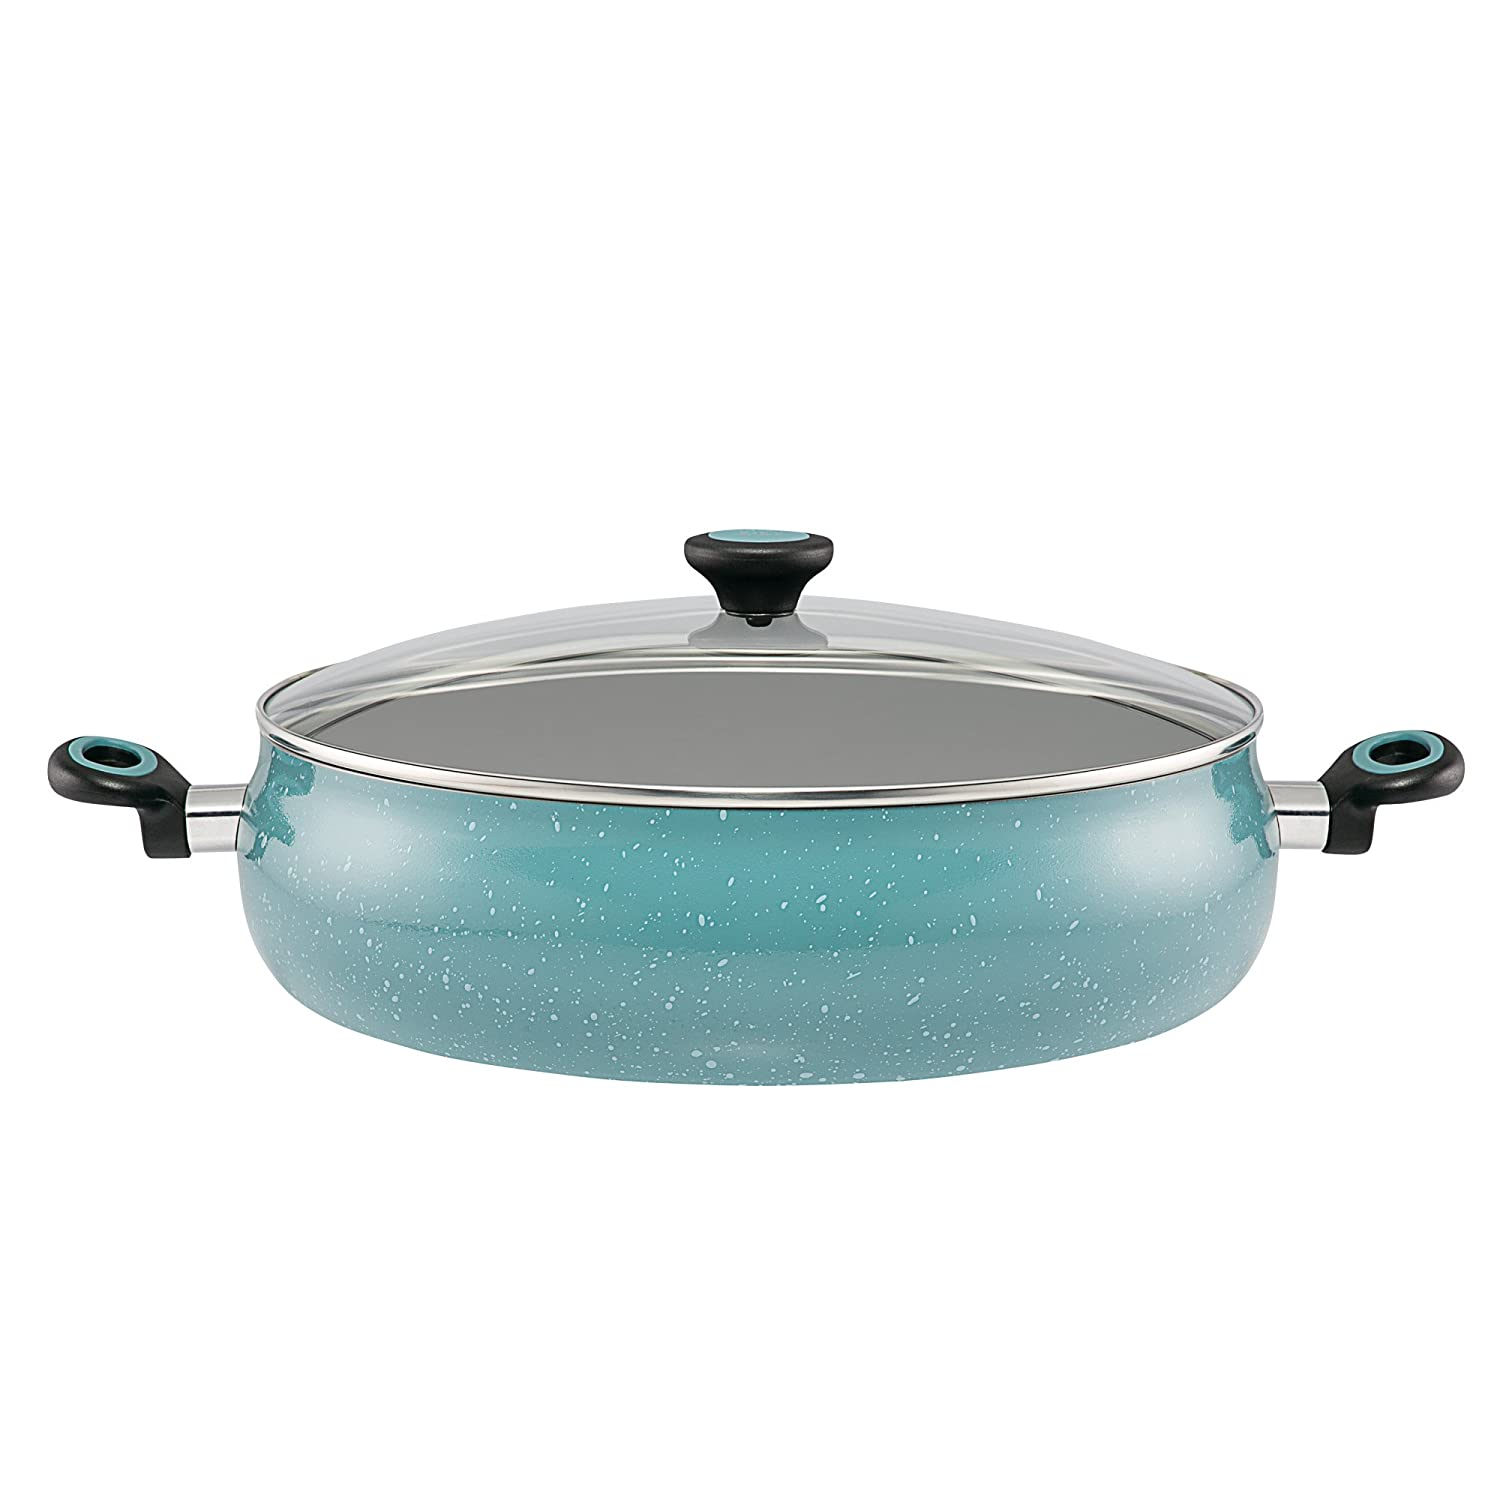 Gulf Blue Speckle Paula Deen 13268 Casserole Riverbend Aluminum Nonstick Covered Family Gathering Pan//Large Jumbo Cooker,13.75-Inch